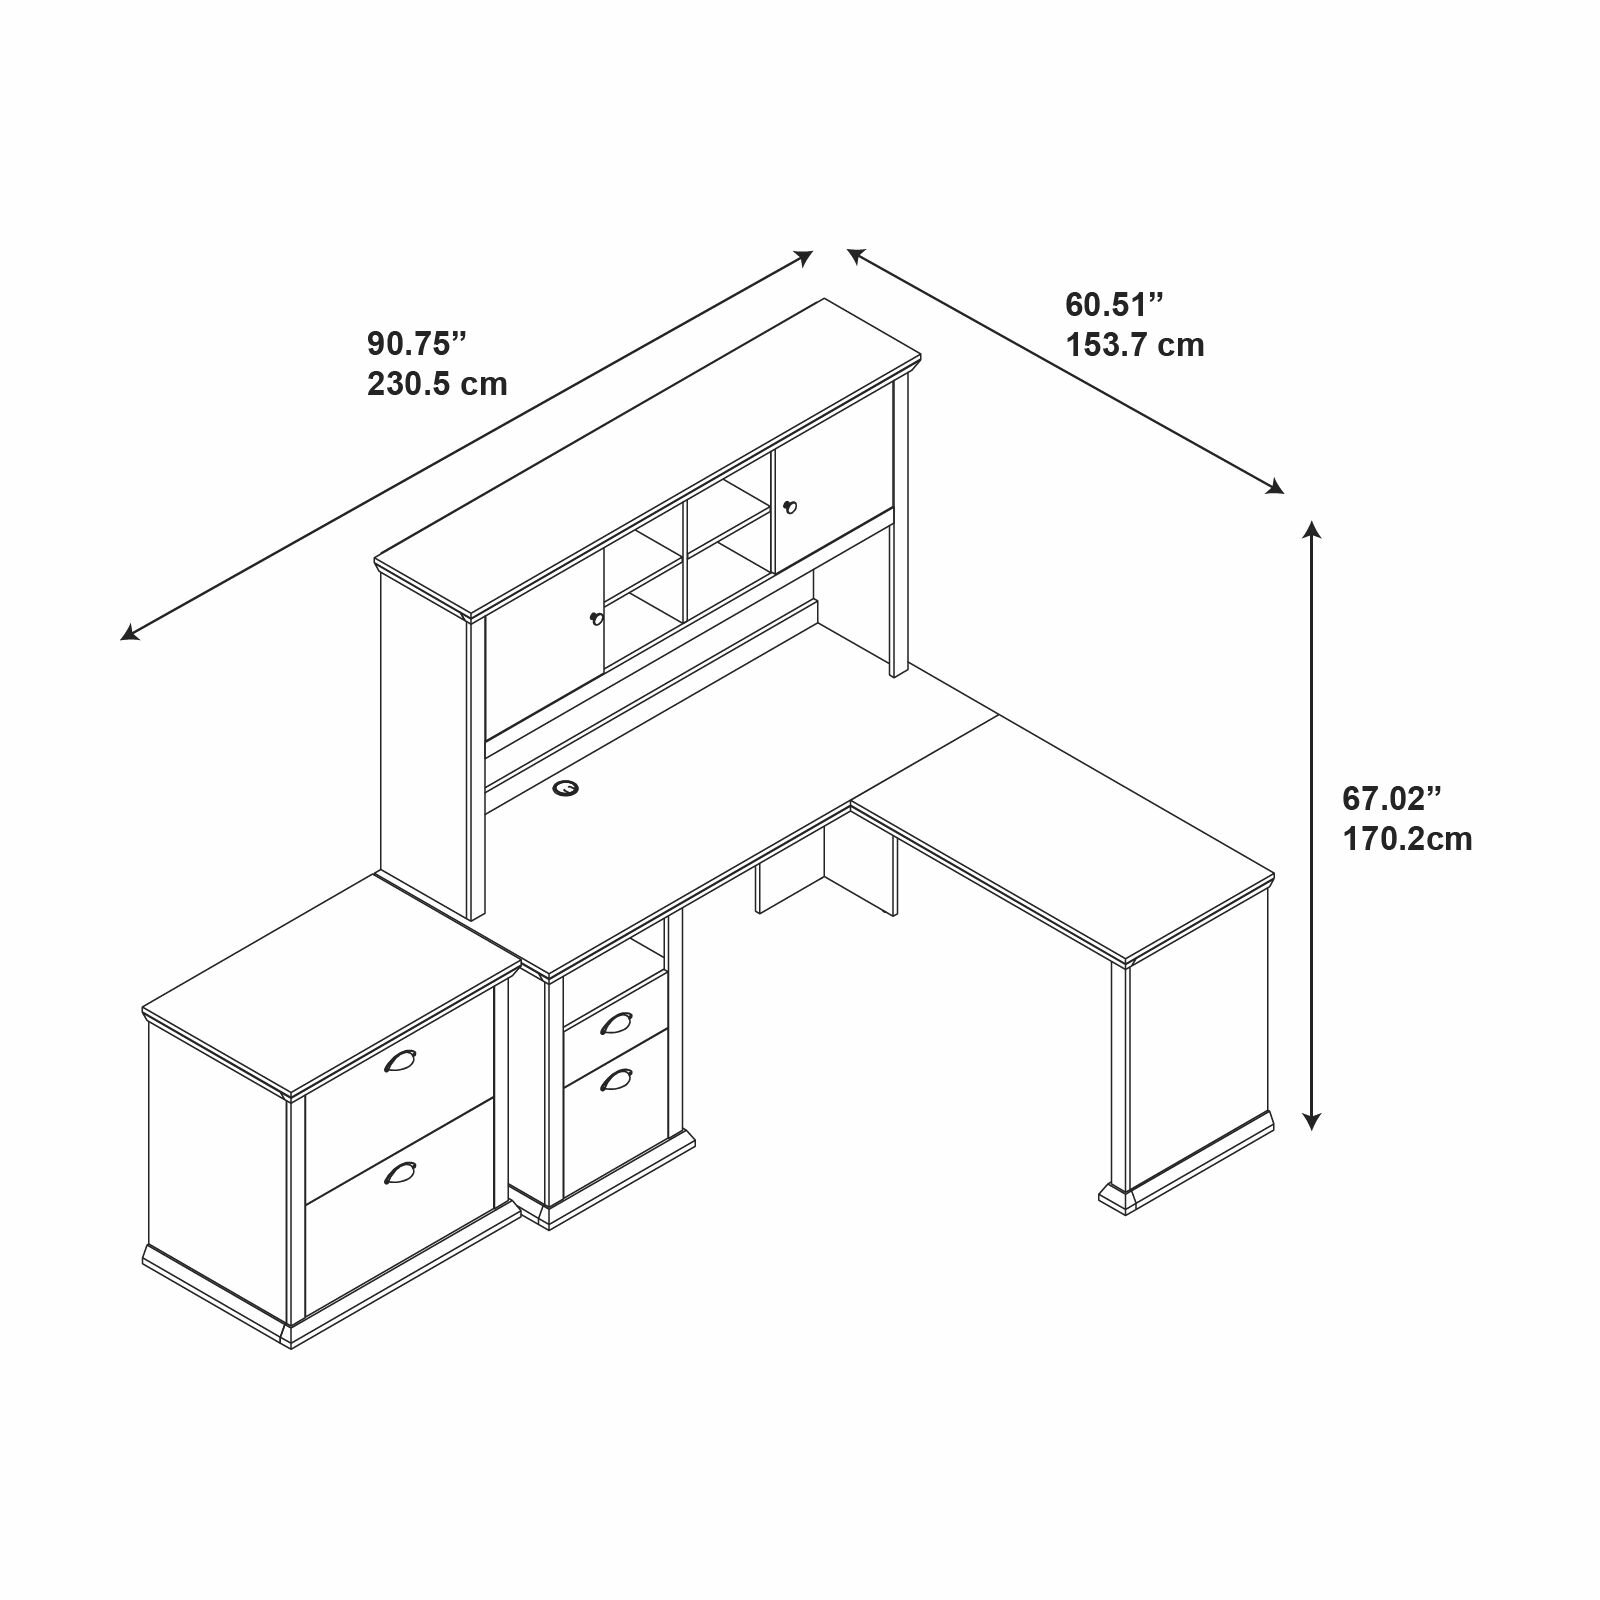 Woodworking Woodworking Plans Corner Desk Plans Pdf Download Free Woodworking Dowels further Square In Ground Fire Pit Ideas Traditional  pact also Average Desk Dimensions in addition Big Green Egg Outdoor Kitchen Grey Bathroom Vanity Units Lighted Medicine Cabi moreover bination 100 16 9. on home office corner desk with hutch